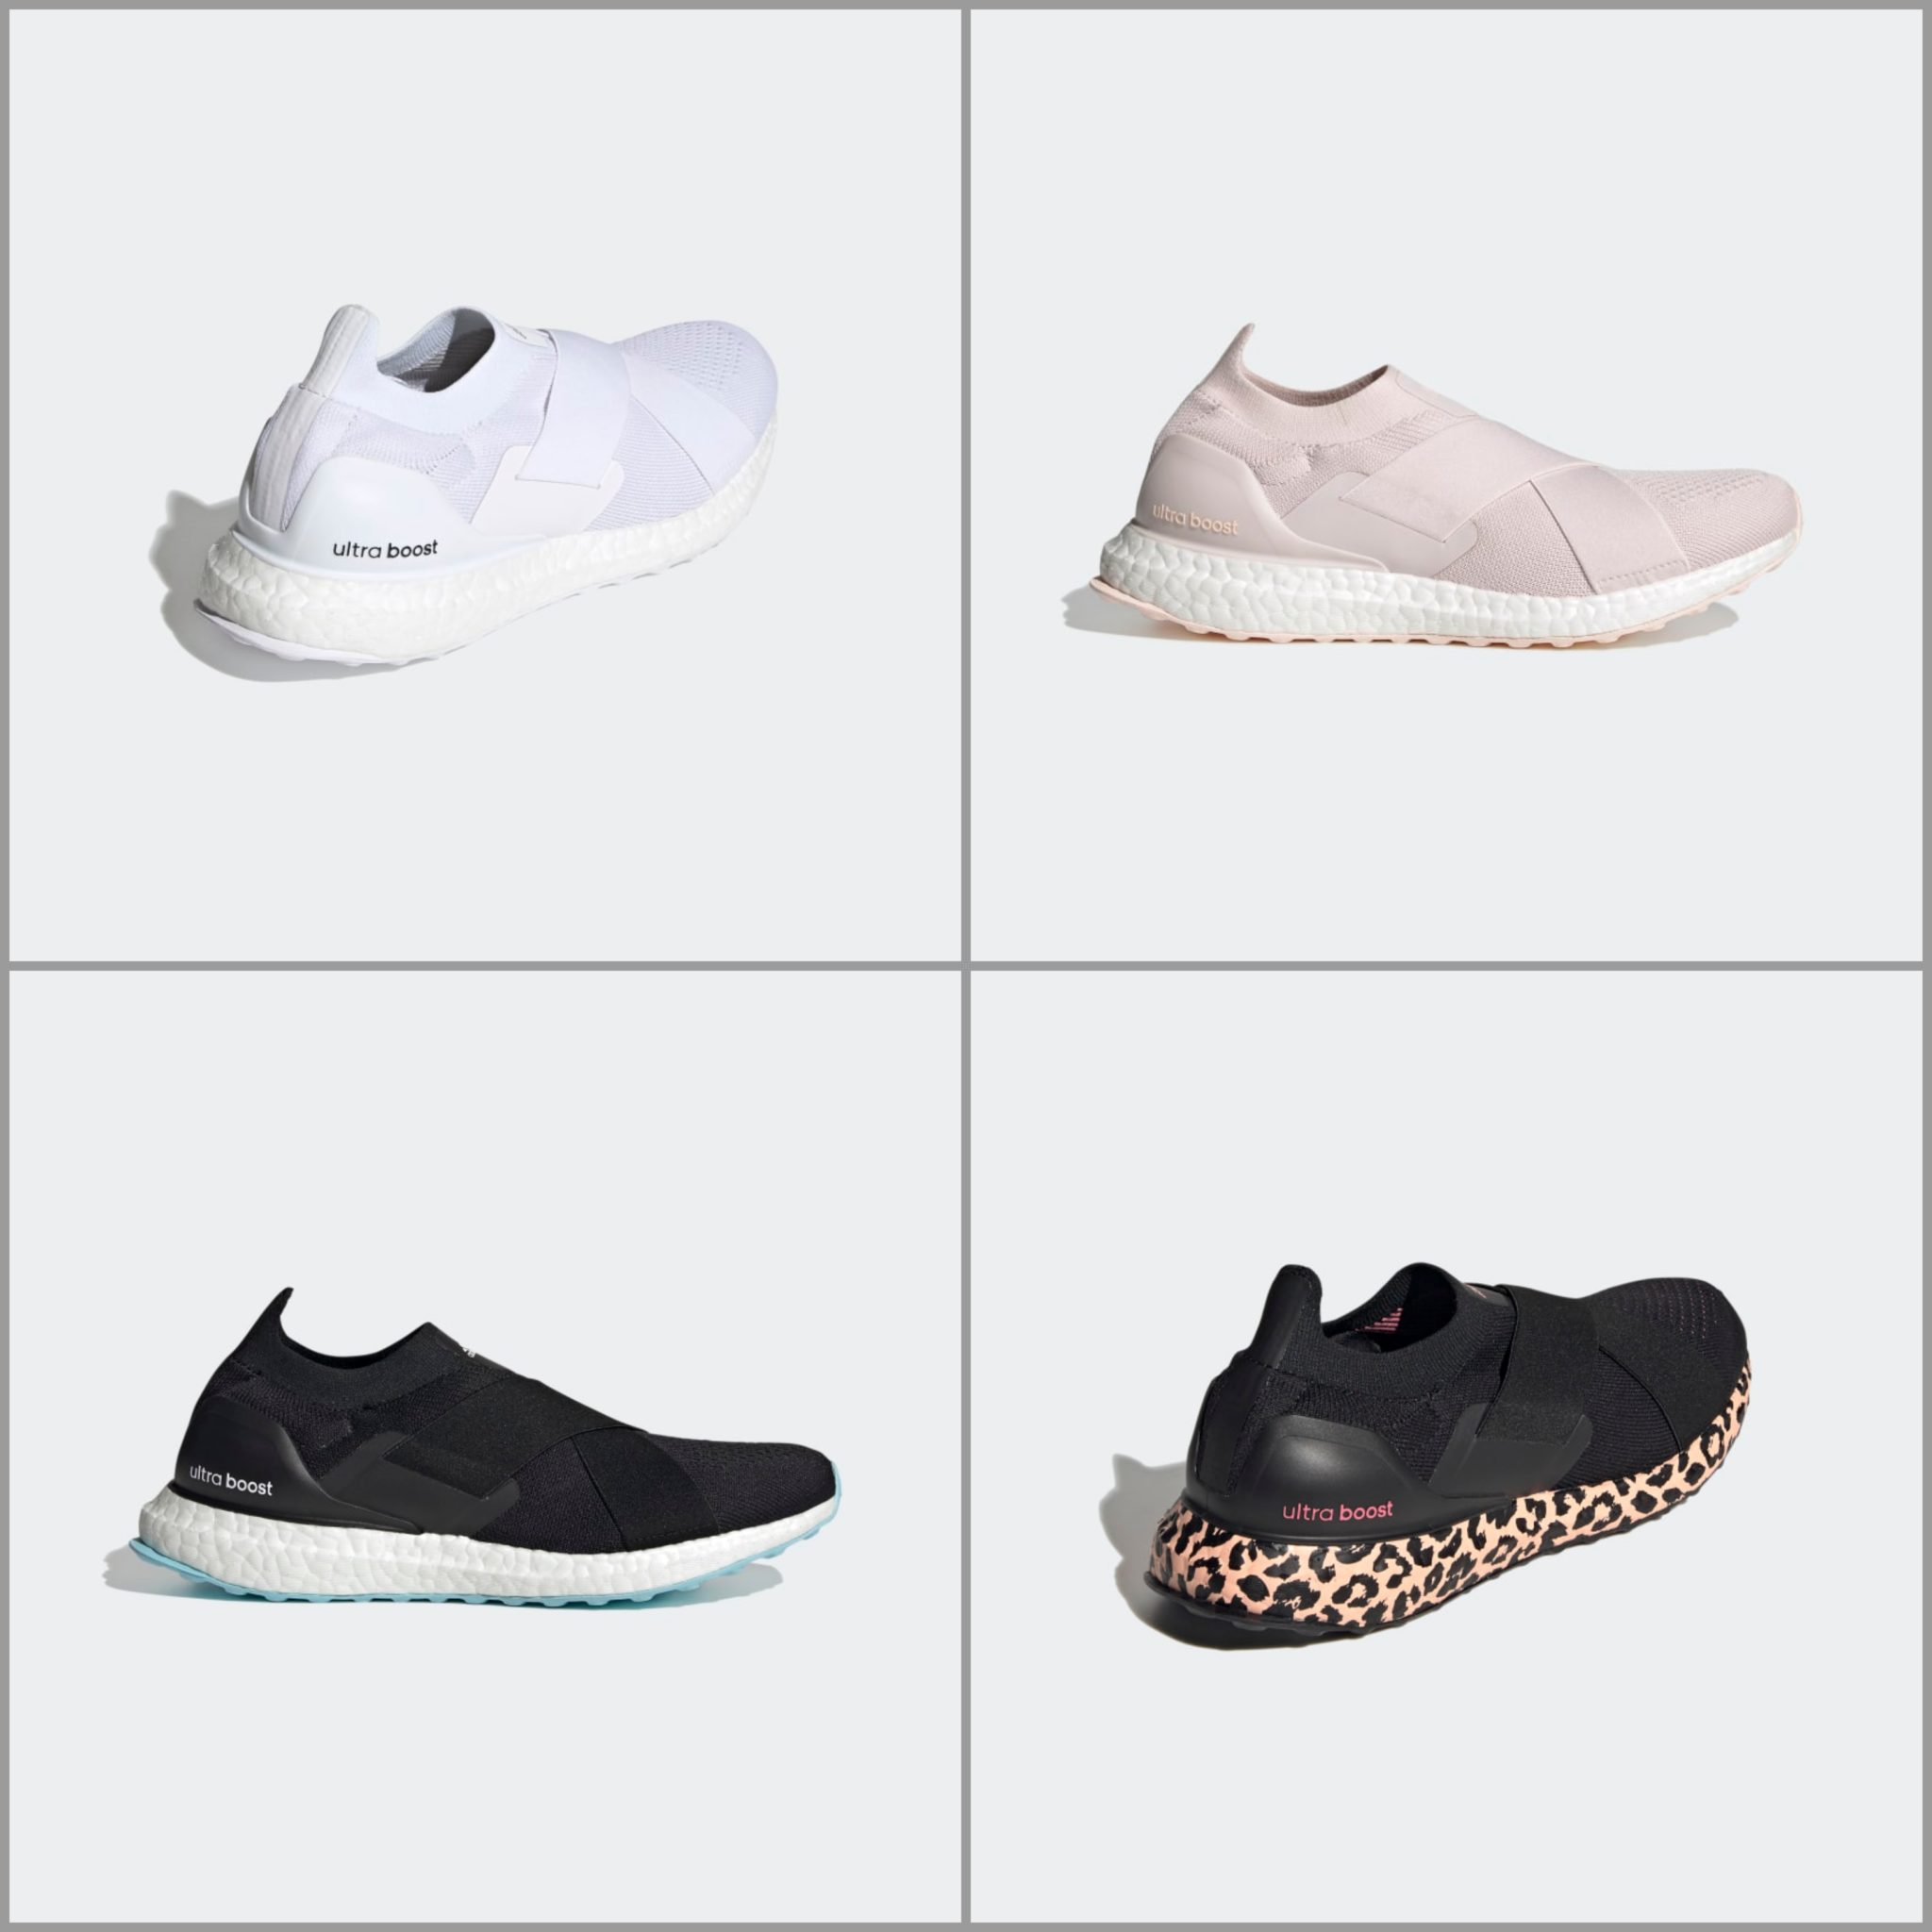 Adidas ultraboost dna slip on colorways